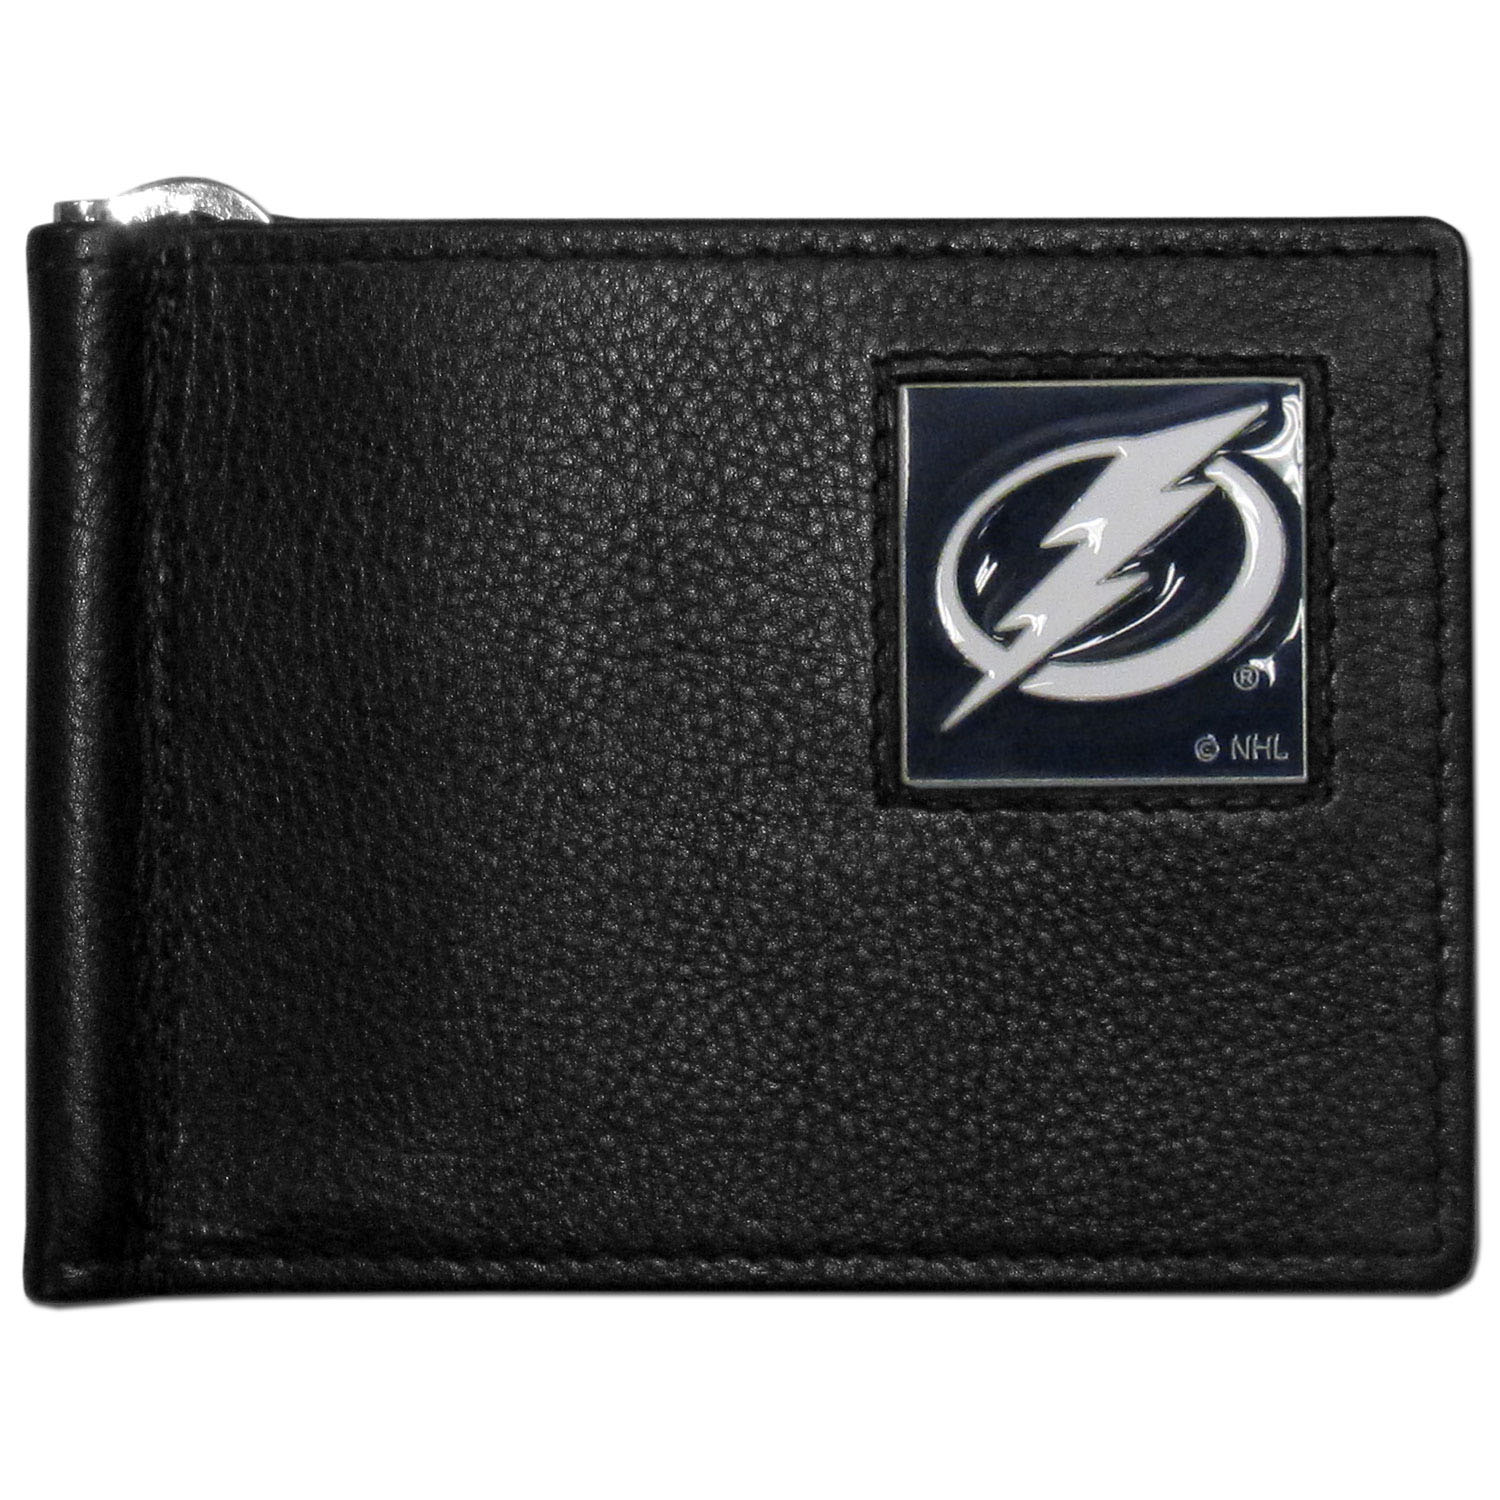 Tampa Bay Lightning® Leather Bill Clip Wallet - This cool new style wallet features an inner, metal bill clip that lips up for easy access. The super slim wallet holds tons of stuff with ample pockets, credit card slots & windowed ID slot. The wallet is made of genuine fine grain leather and it finished with a metal Tampa Bay Lightning® emblem. The wallet is shipped in gift box packaging.